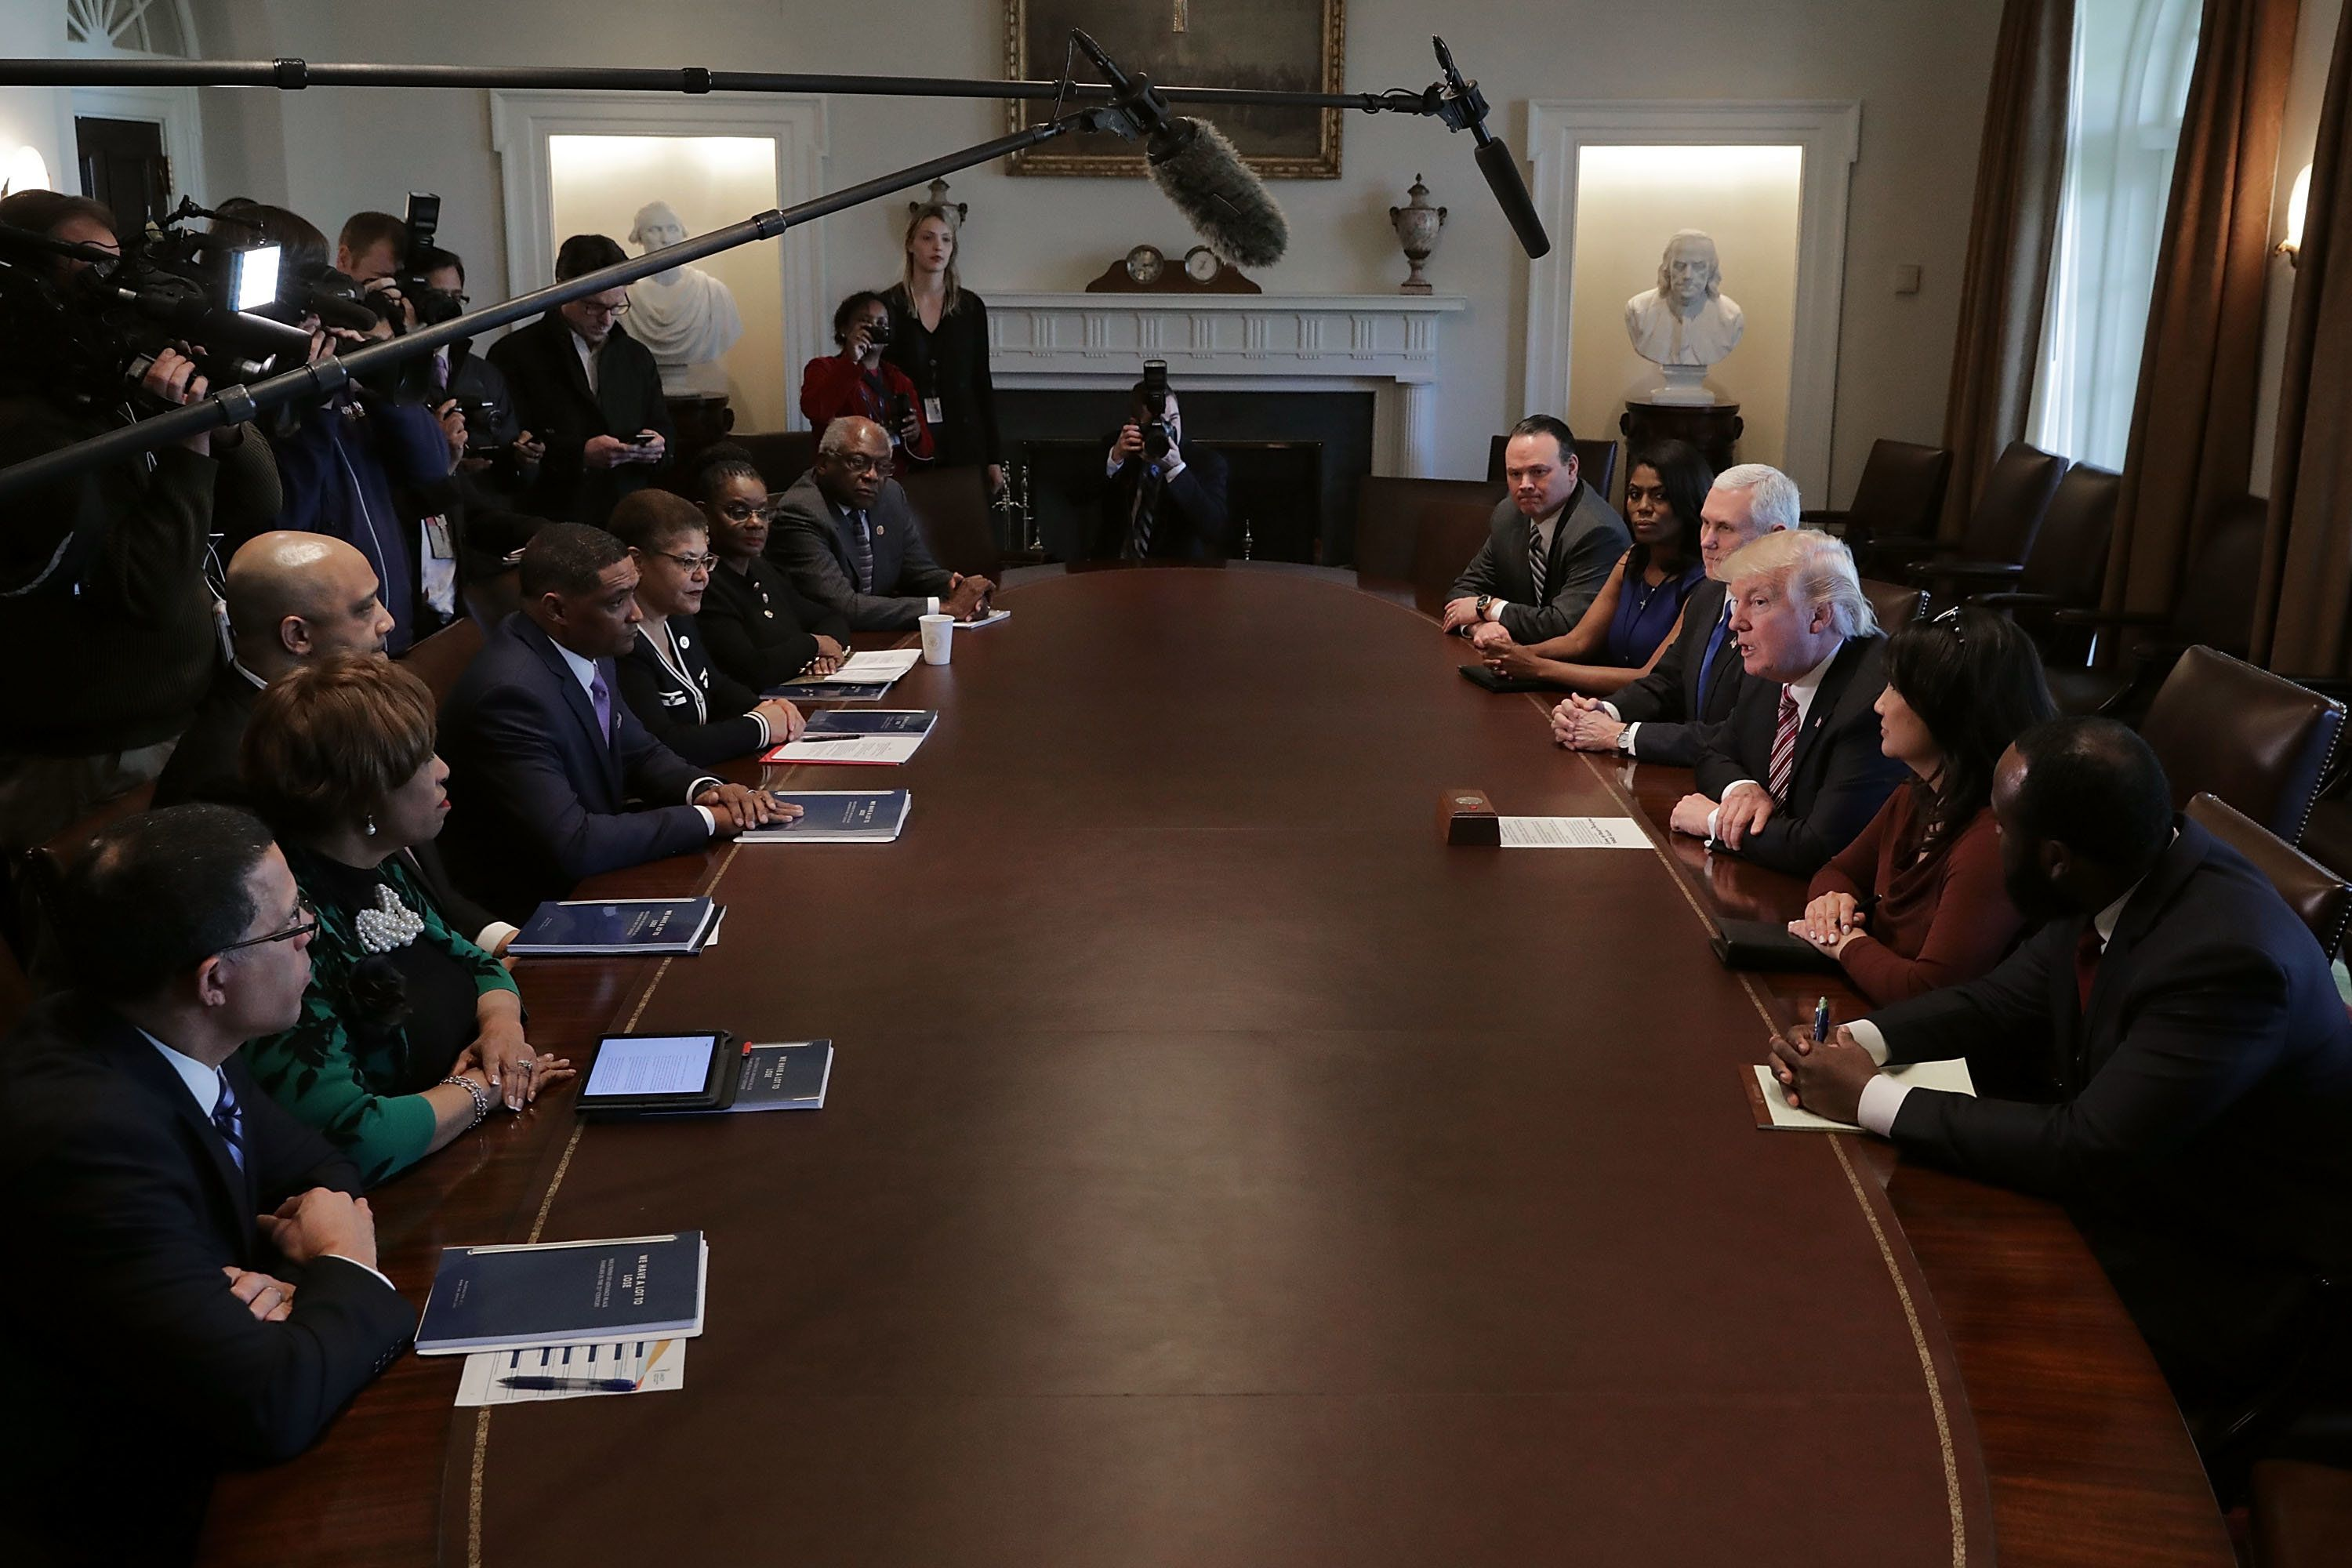 WASHINGTON, DC - MARCH 22:  (AFP OUT) U.S. President Donald Trump (3rd R) is joined by Vice President Mike Pence, White House Director of Communications for the Office of Public Engagement and Intergovernmental Affairs Omarosa Manigault and other staff members during a meeting with the Congressional Black Caucus Executive Committee in the Cabinet Room at the White House March 22, 2017 in Washington, DC. During the 2016 presidential campaign, Trump asked African Americans to support him, saying, 'You're living in poverty, your schools are no good, you have no jobs, 58 percent of your youth is unemployed -- what the hell do you have to lose?'  (Photo by Chip Somodevilla/Getty Images)